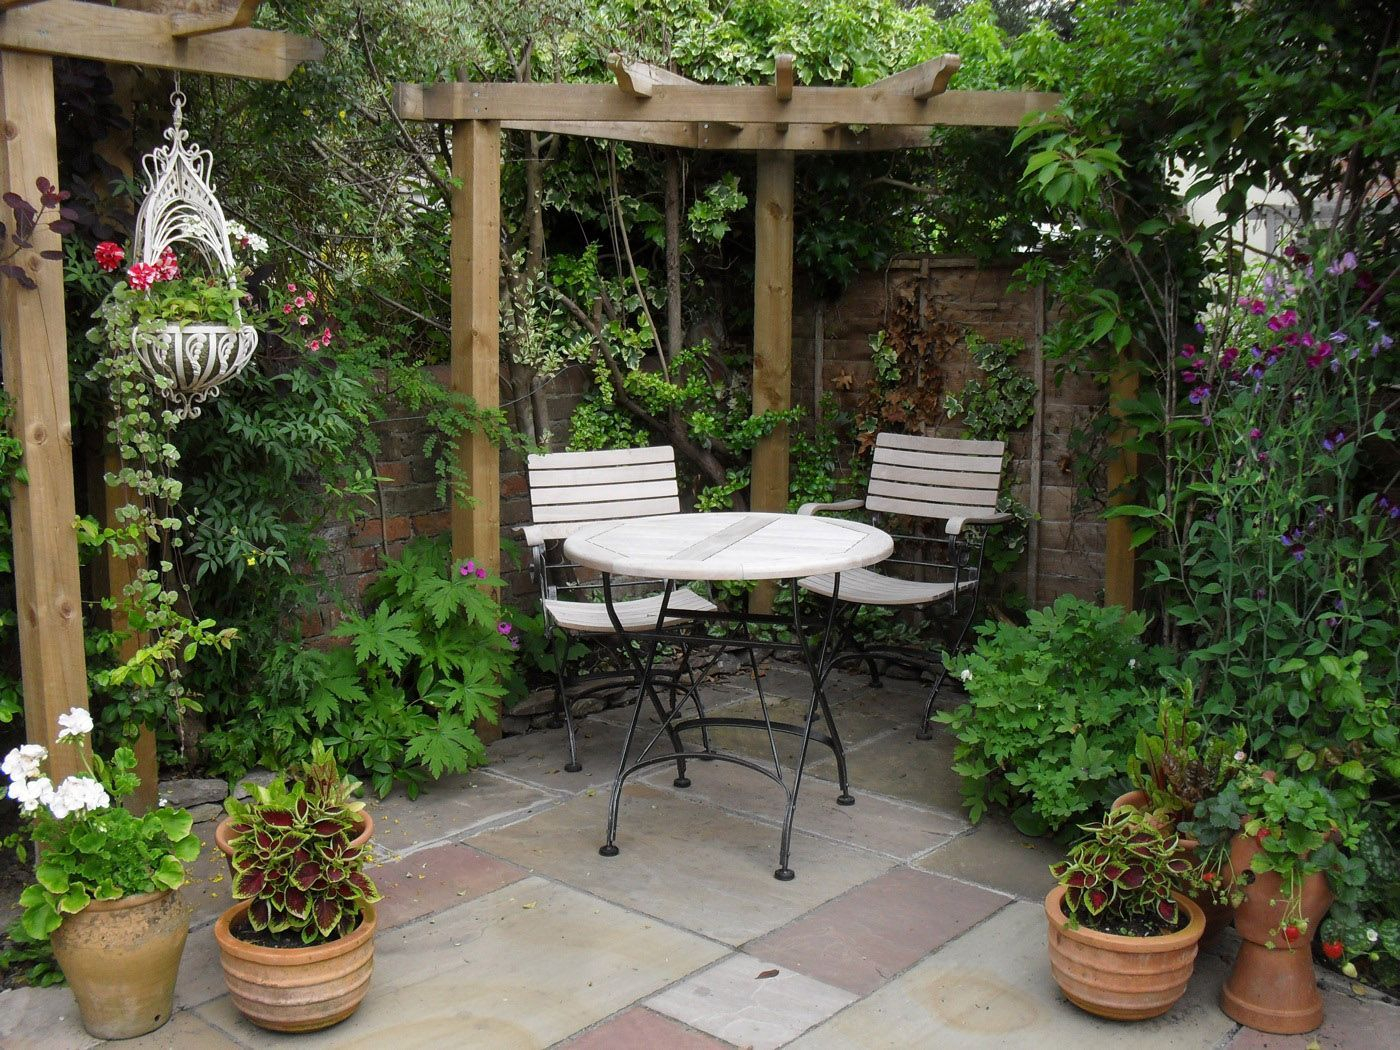 Garden Outdoor Porch Design Ideas Small Patio Tiles Backyard Patio inside 12 Smart Designs of How to Improve Patio Ideas For Small Backyard